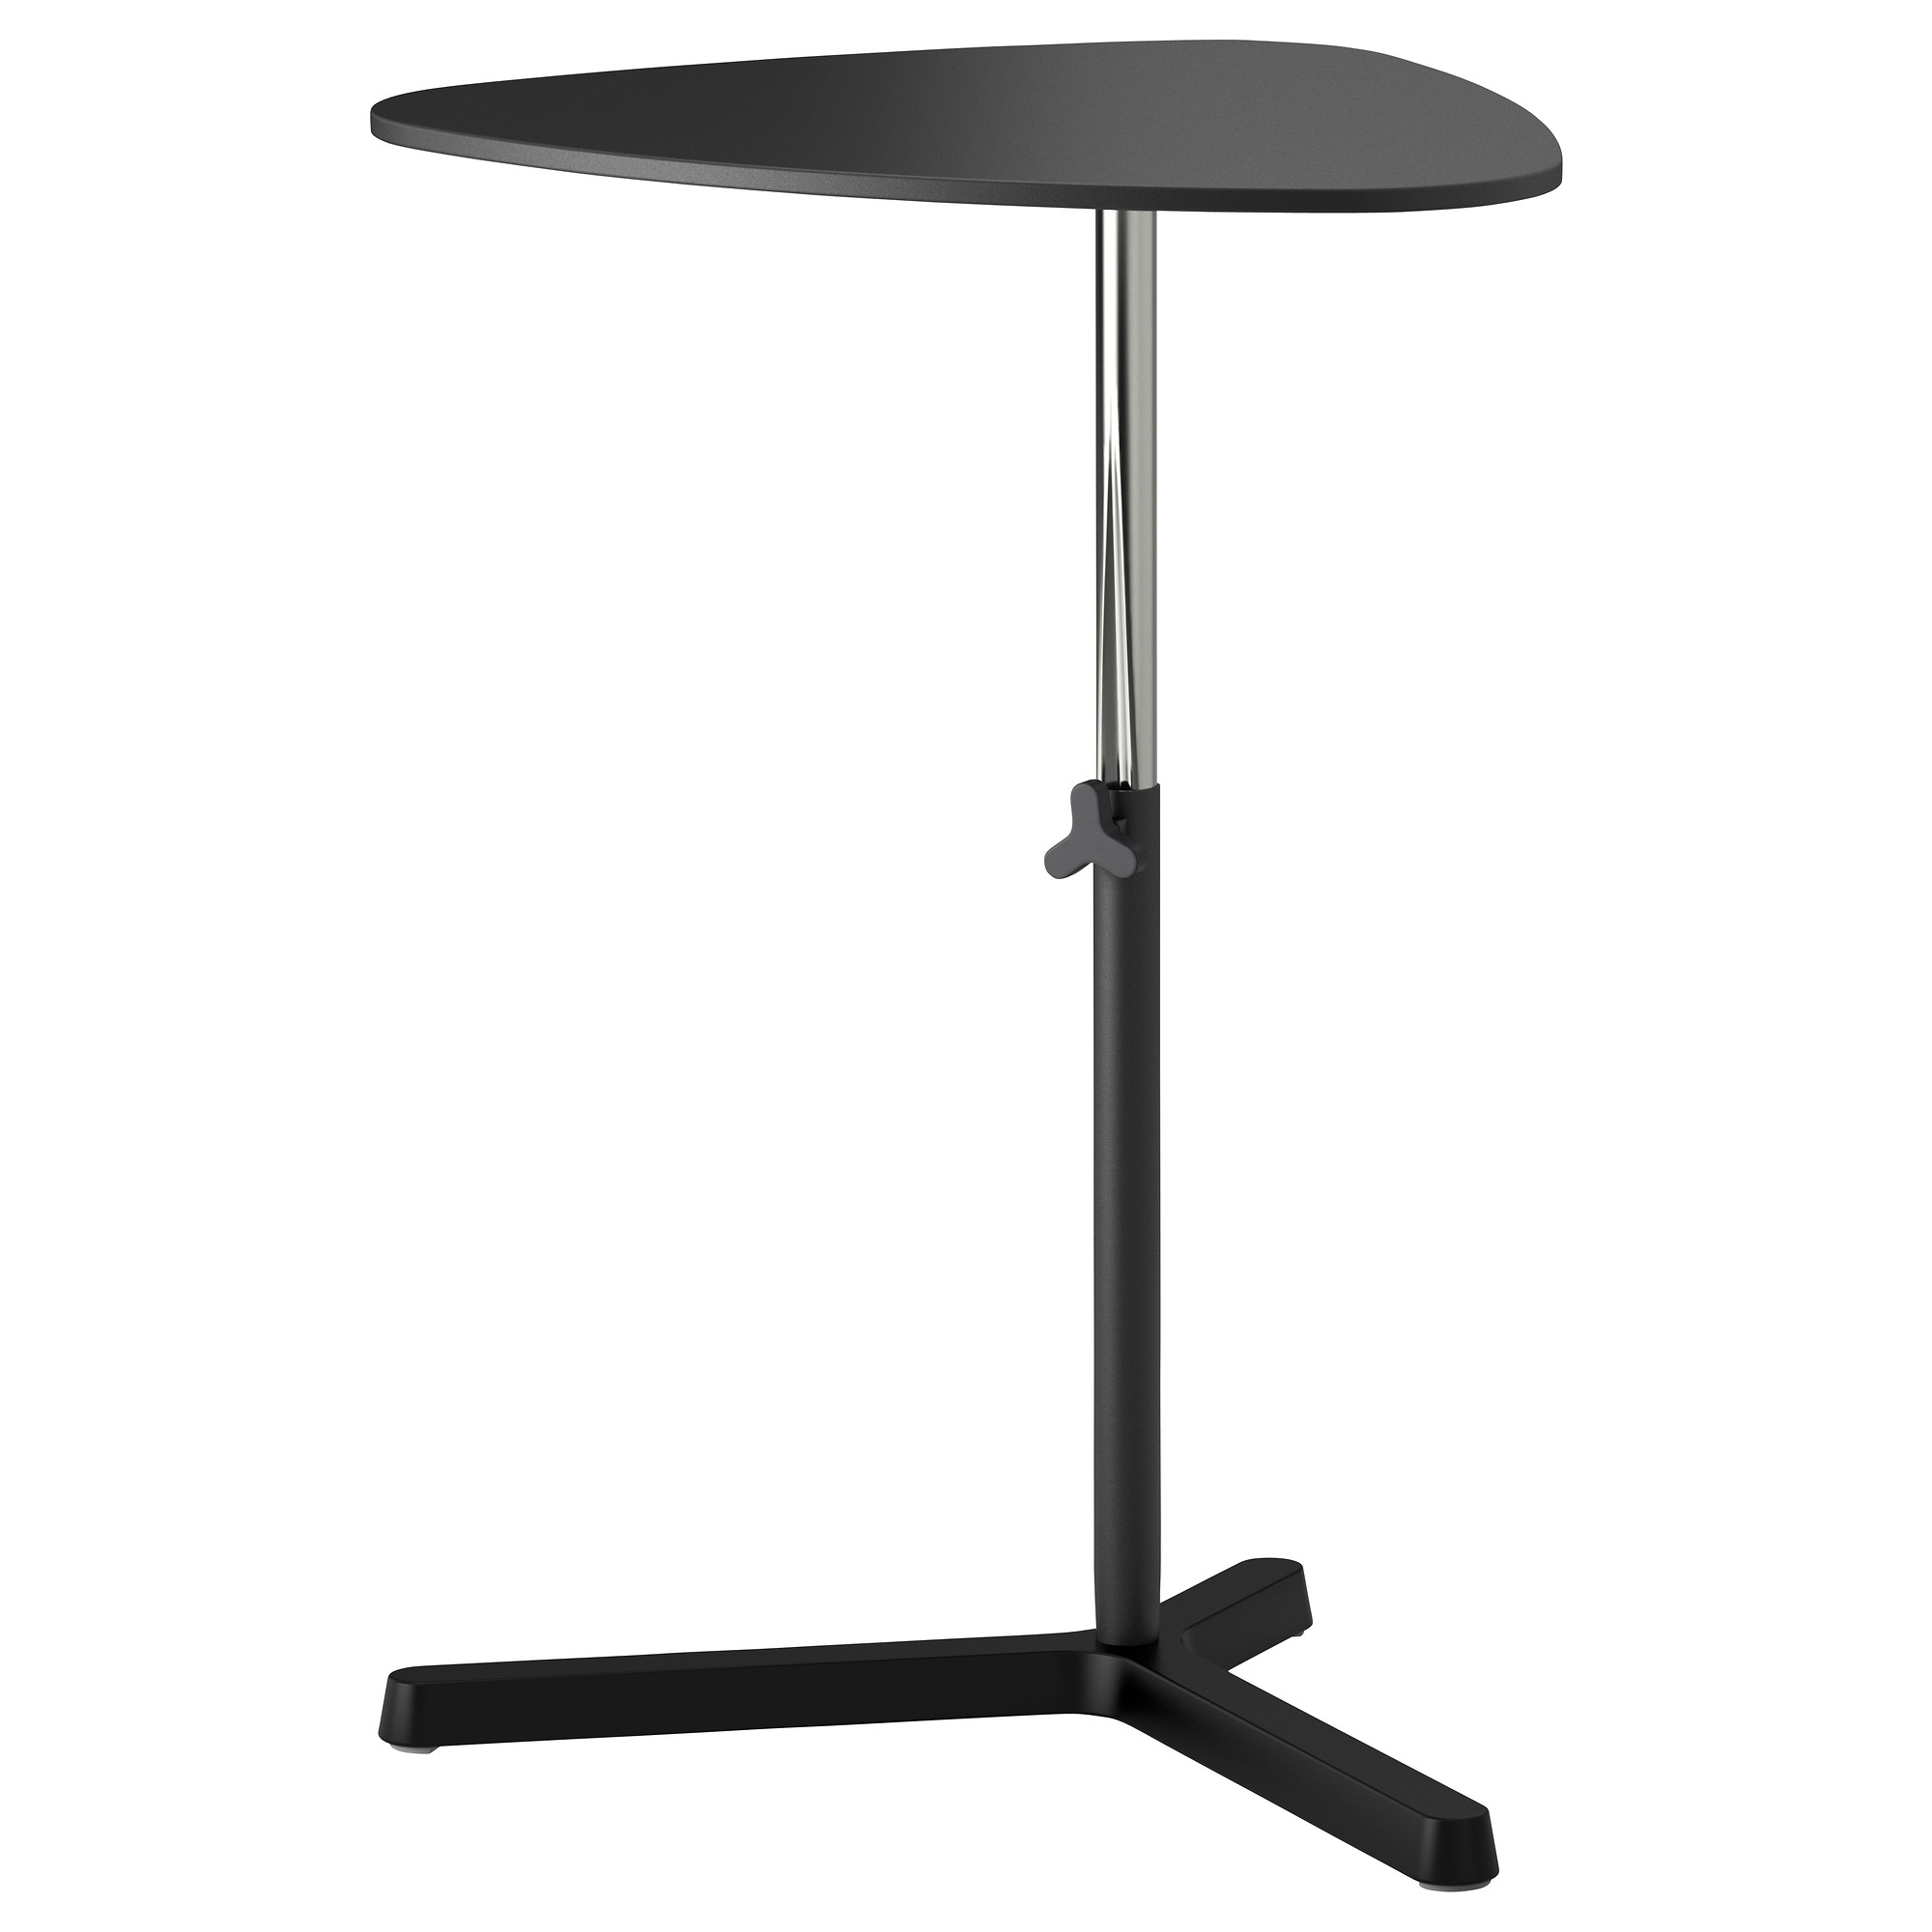 Table For Laptop Ikea 28 Photos Choose A Small Side Table On Wheels And Practical Folding Models